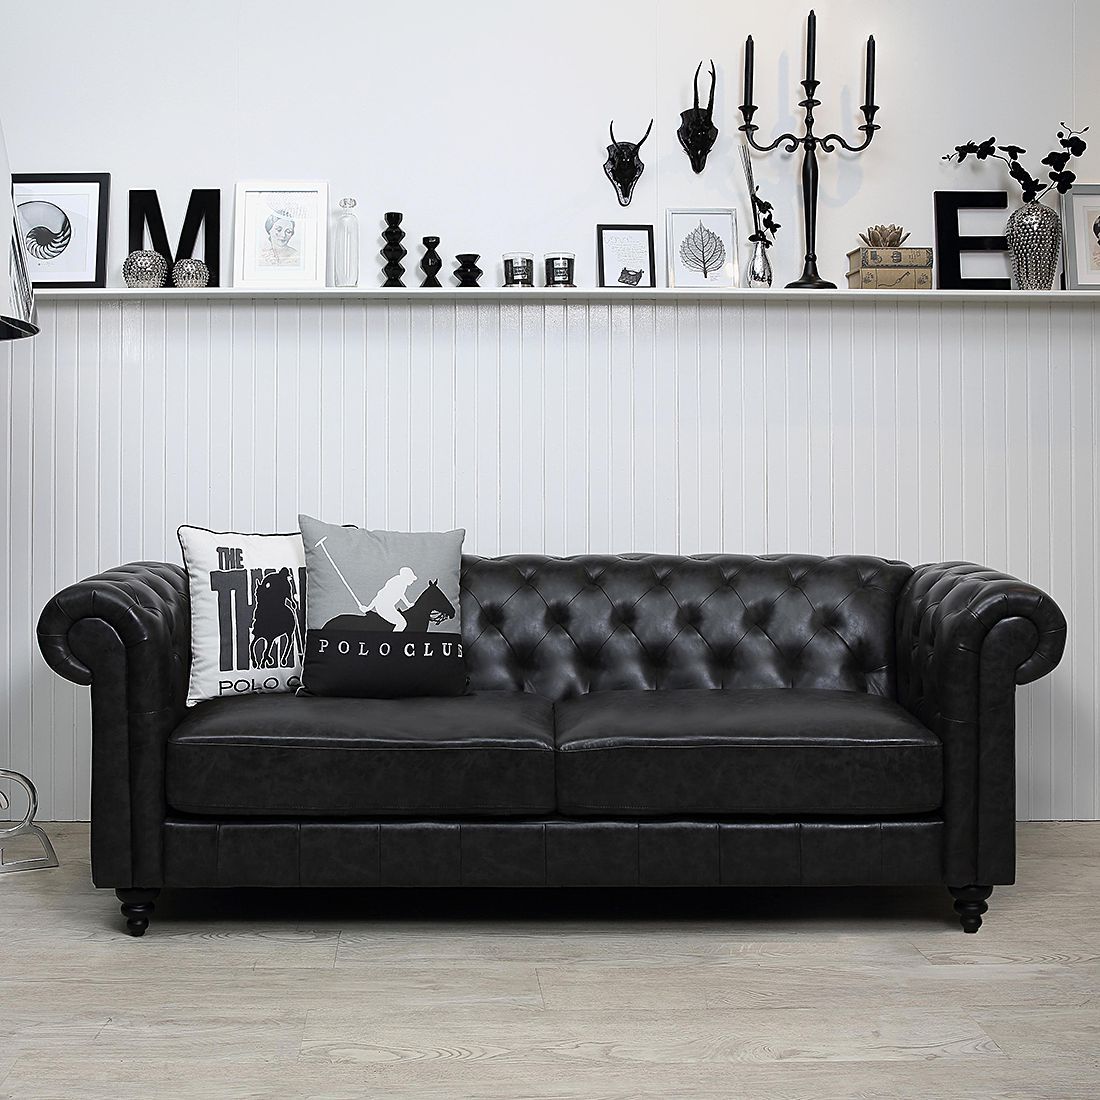 12 sparen chesterfieldsofa charly von furnlab in schwarz nur 699 99 cherry m bel. Black Bedroom Furniture Sets. Home Design Ideas